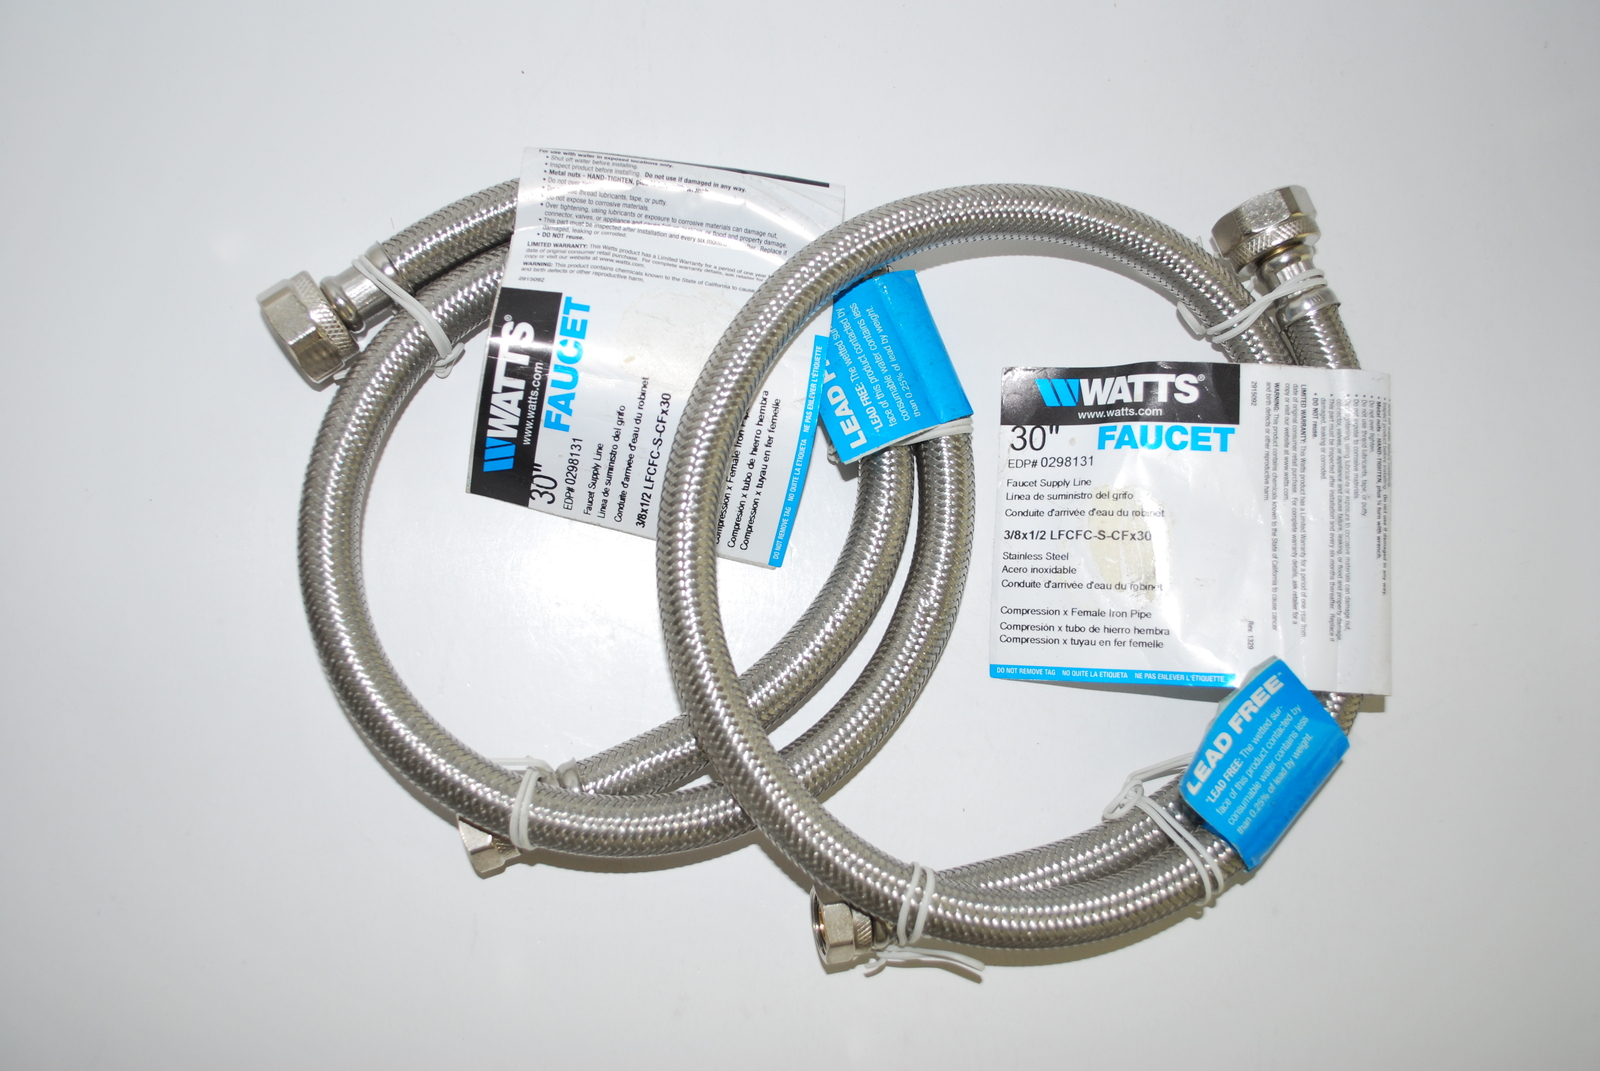 (2) 3/8 x 1/2 x 30 Braided Stainless Steel Faucet Supply Lines by Watts